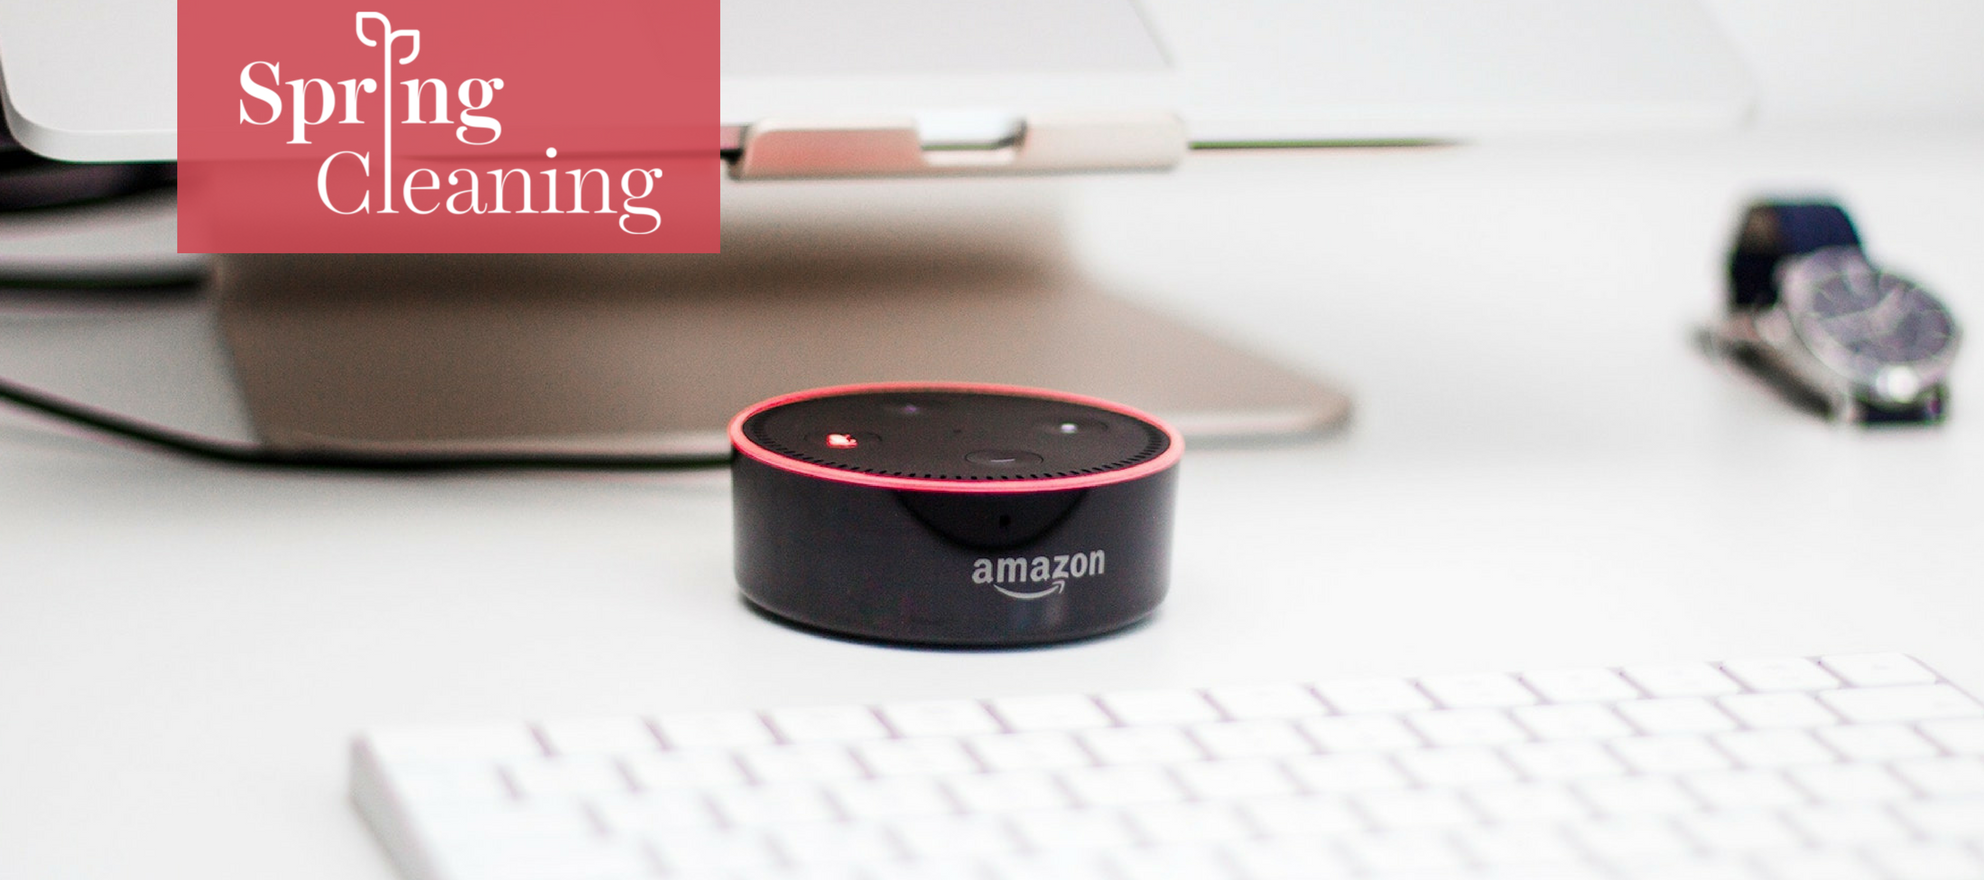 How to make Amazon's Alexa part of your real estate marketing